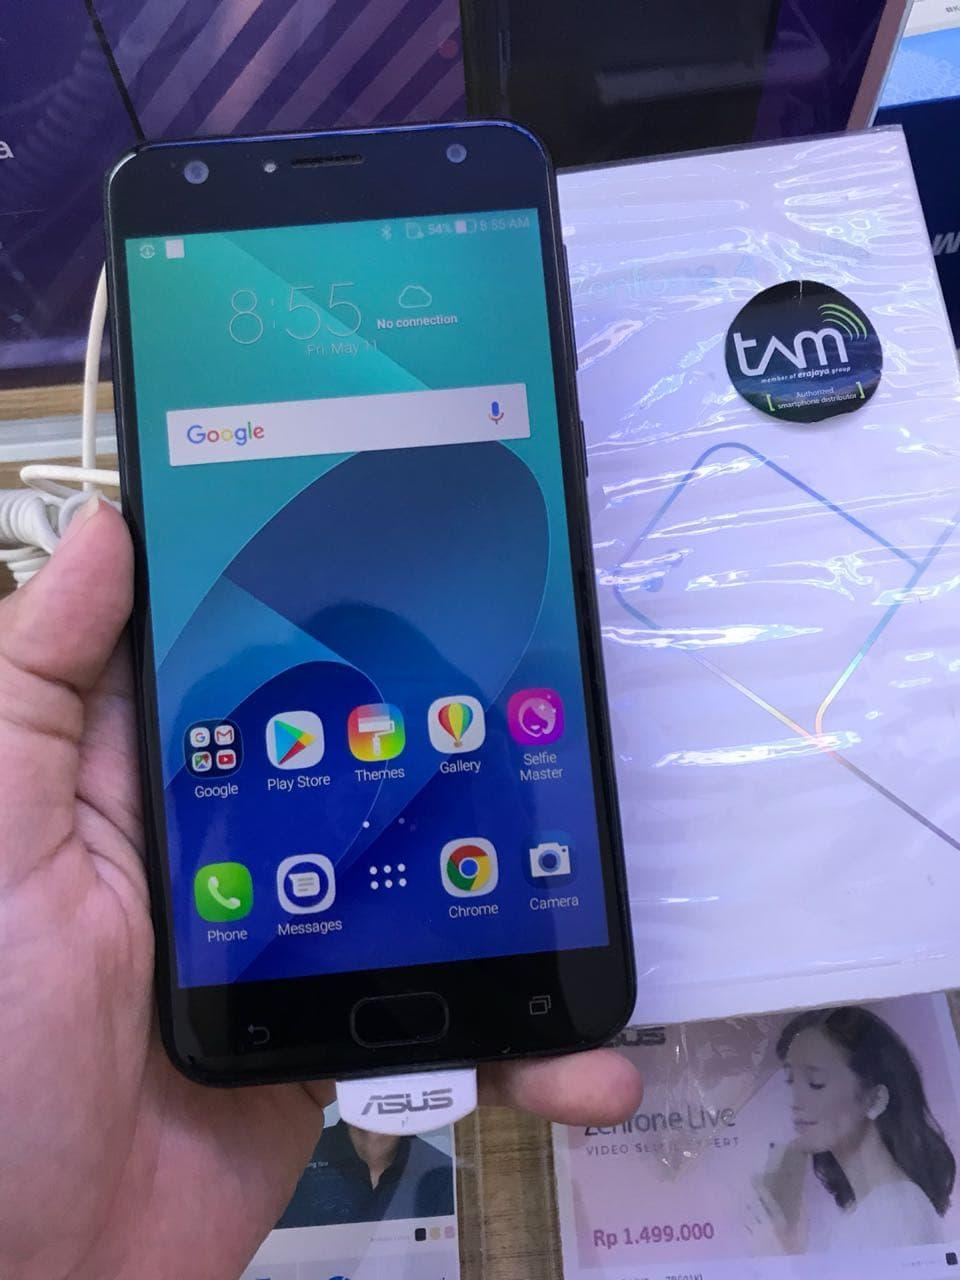 SECOND ASUS ZENFONE 4 SELFIE 4GB/64GB ZD553KL EX DEMOLIVE 7 BLN DISPLA